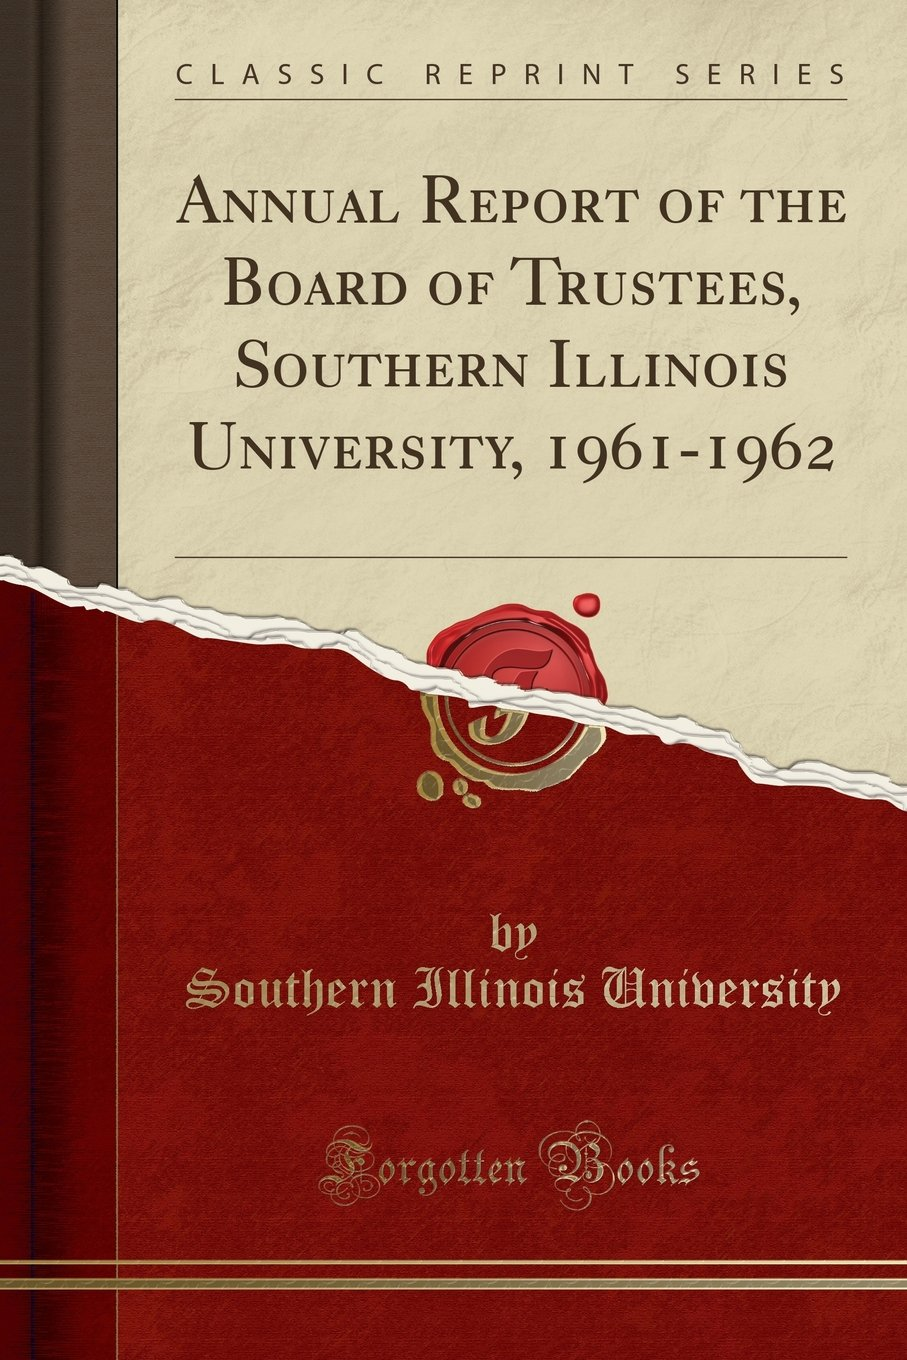 Download Annual Report of the Board of Trustees, Southern Illinois University, 1961-1962 (Classic Reprint) ebook